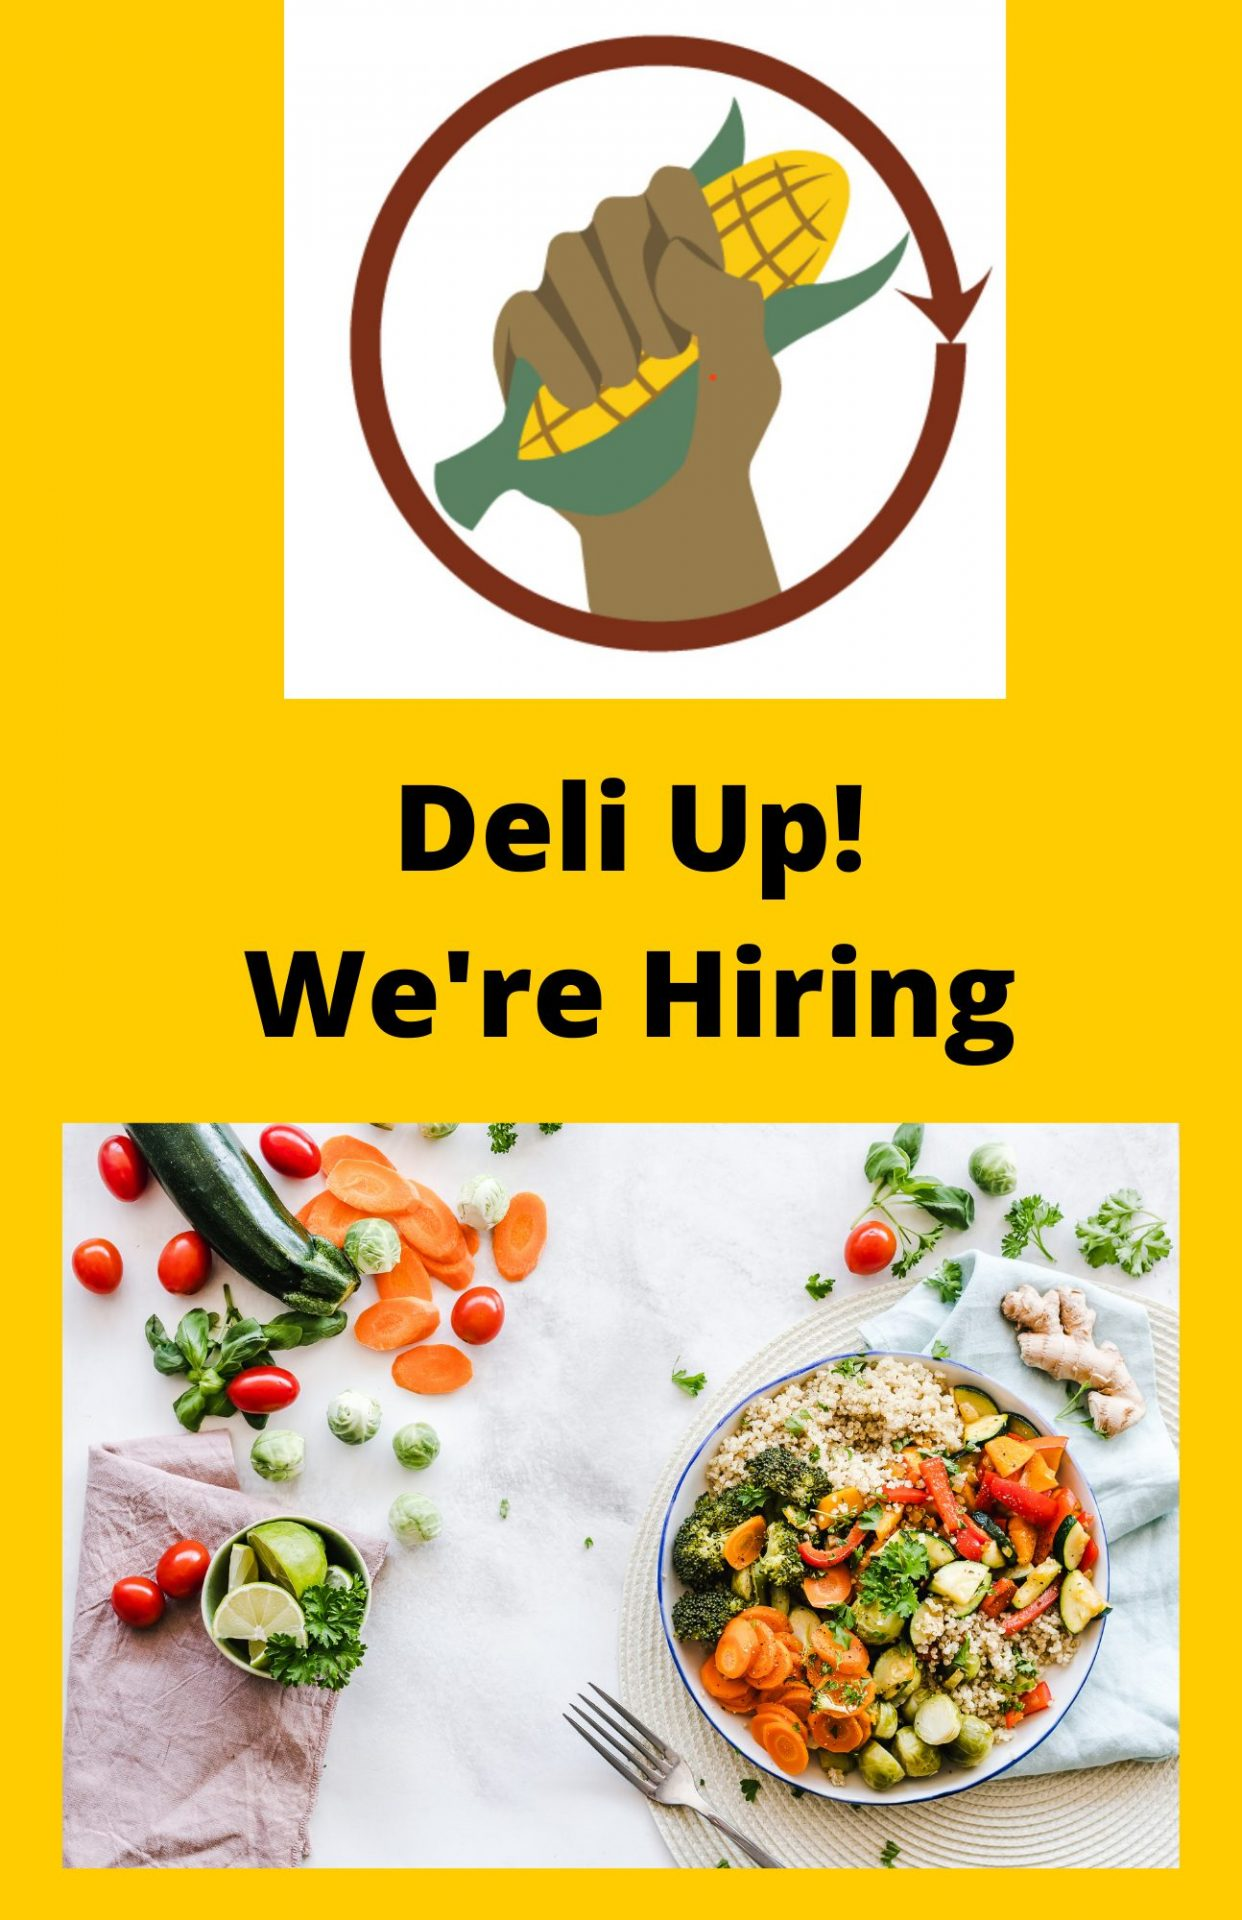 We're Hiring! Join our team to launch our Deli business image